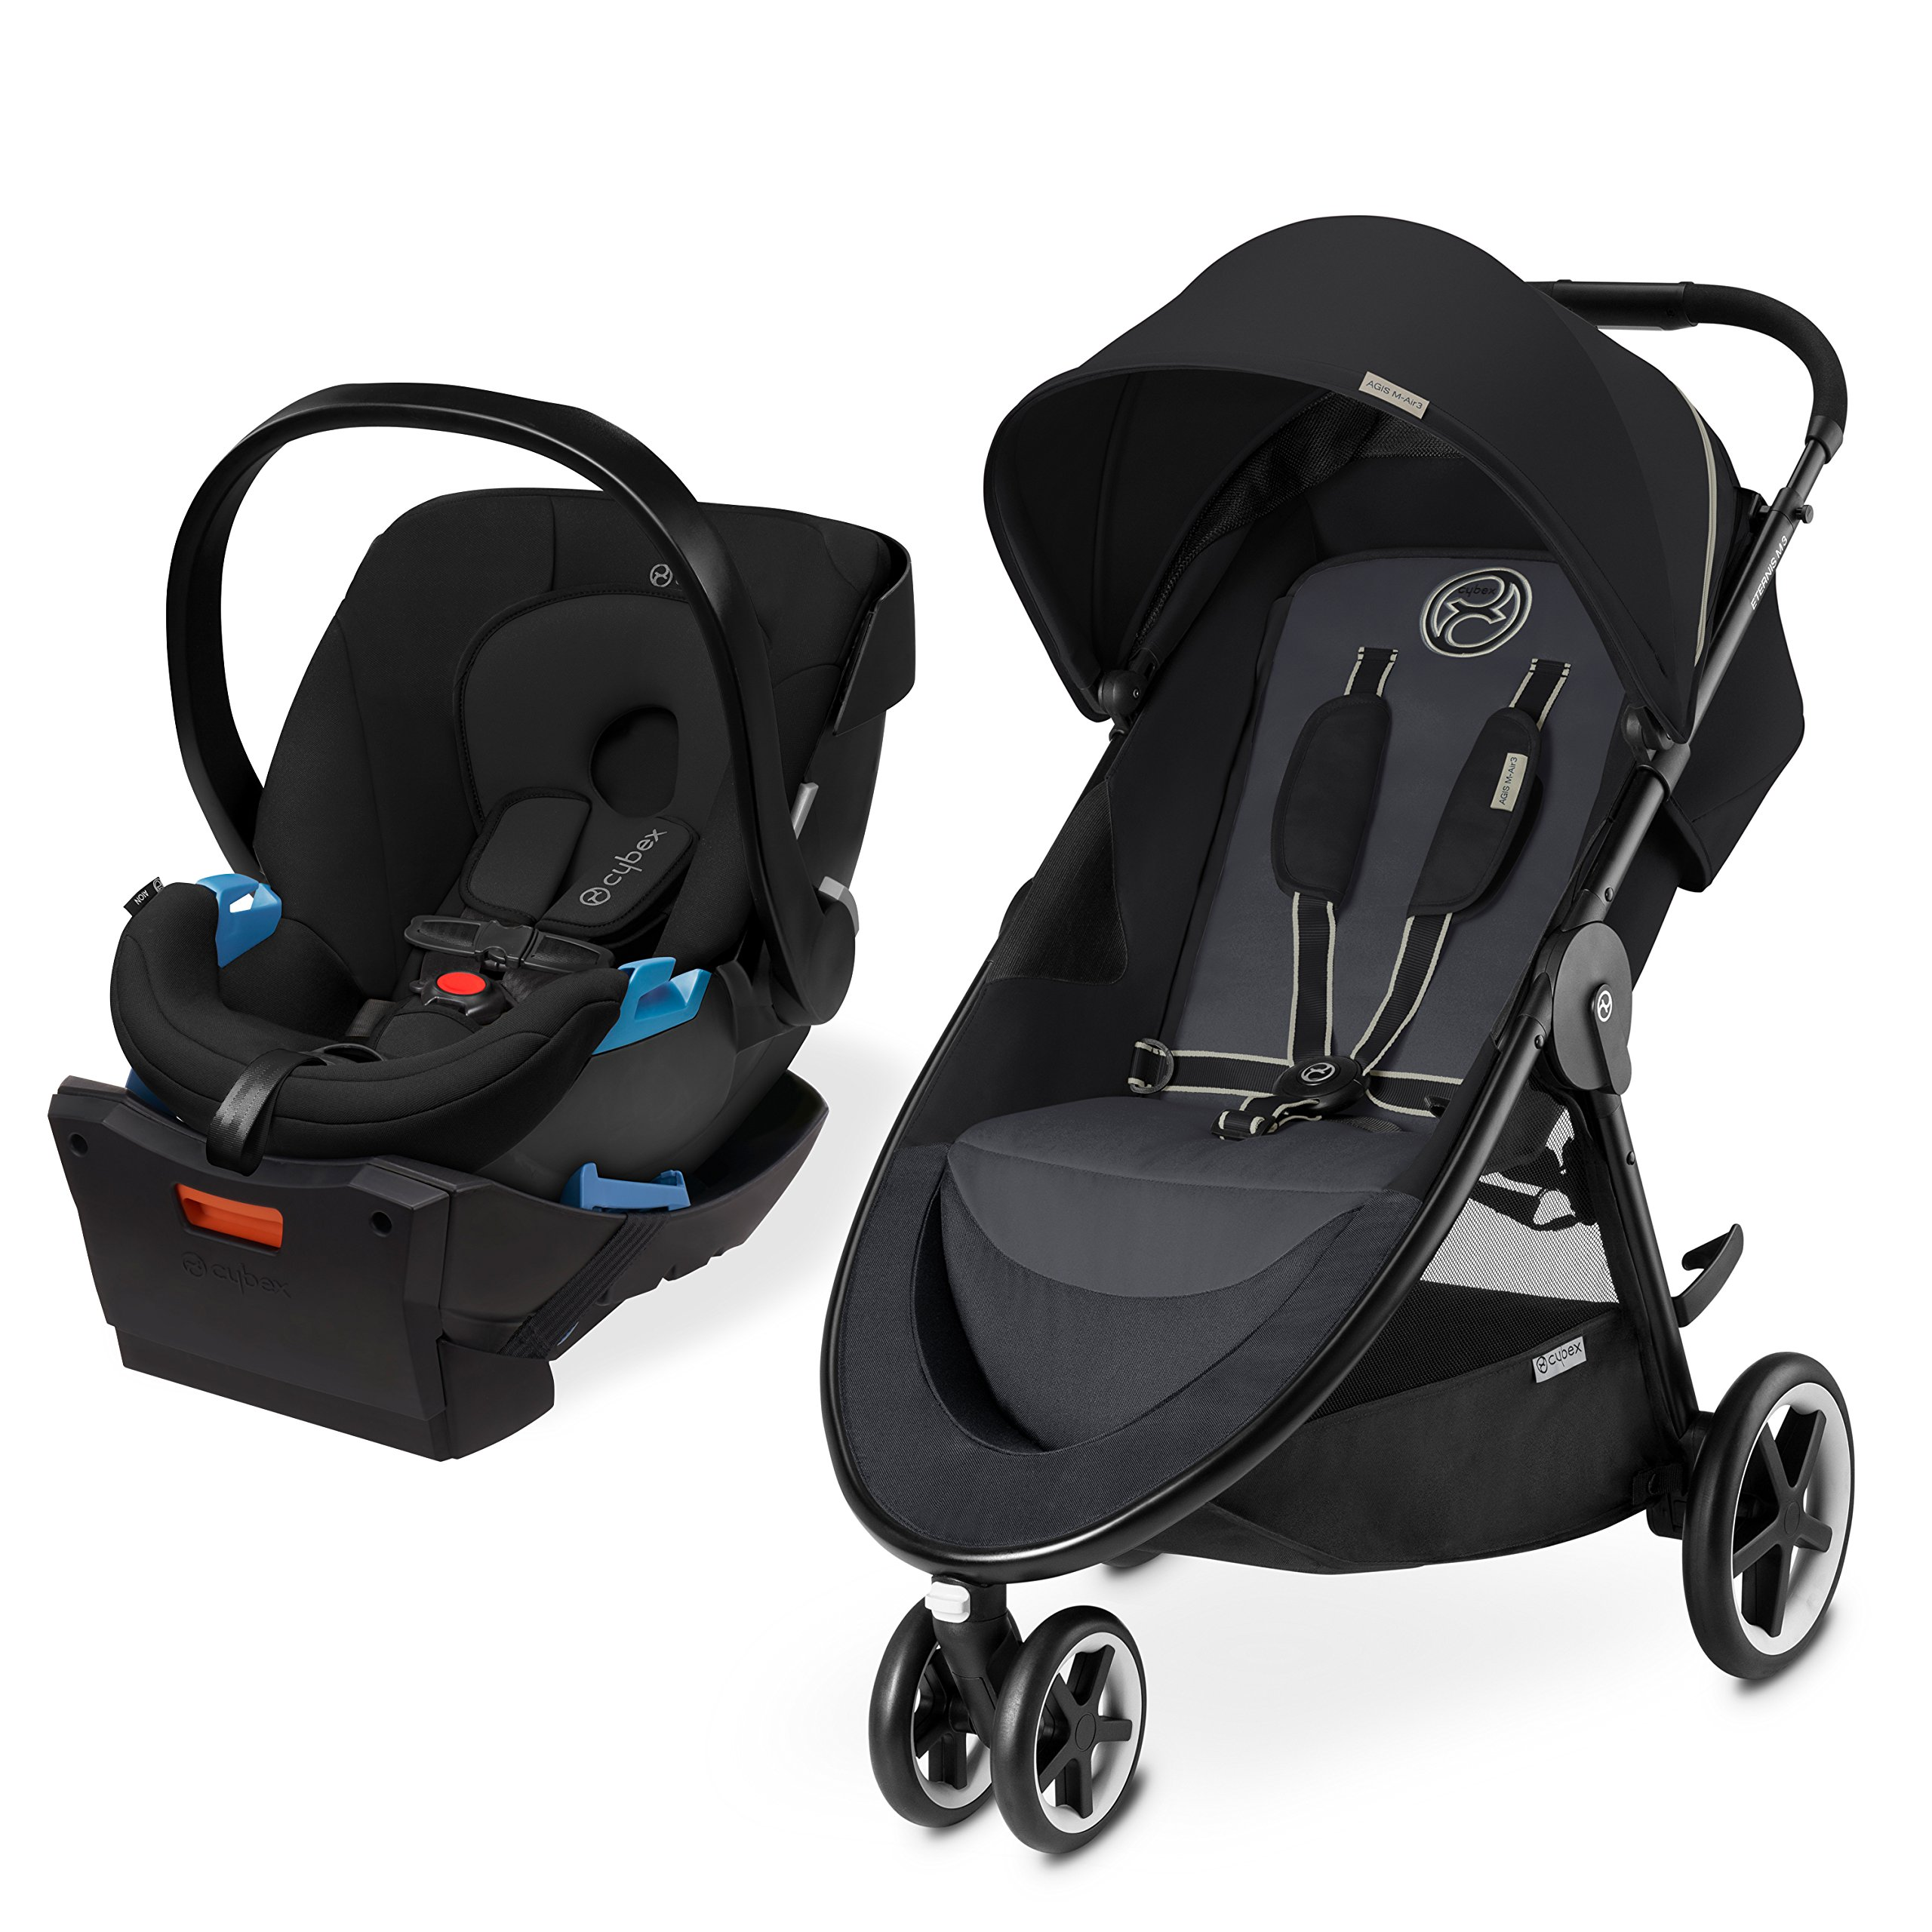 Cybex Agis M-Air 3/Aton/Aton Base Travel System, Moon Dust